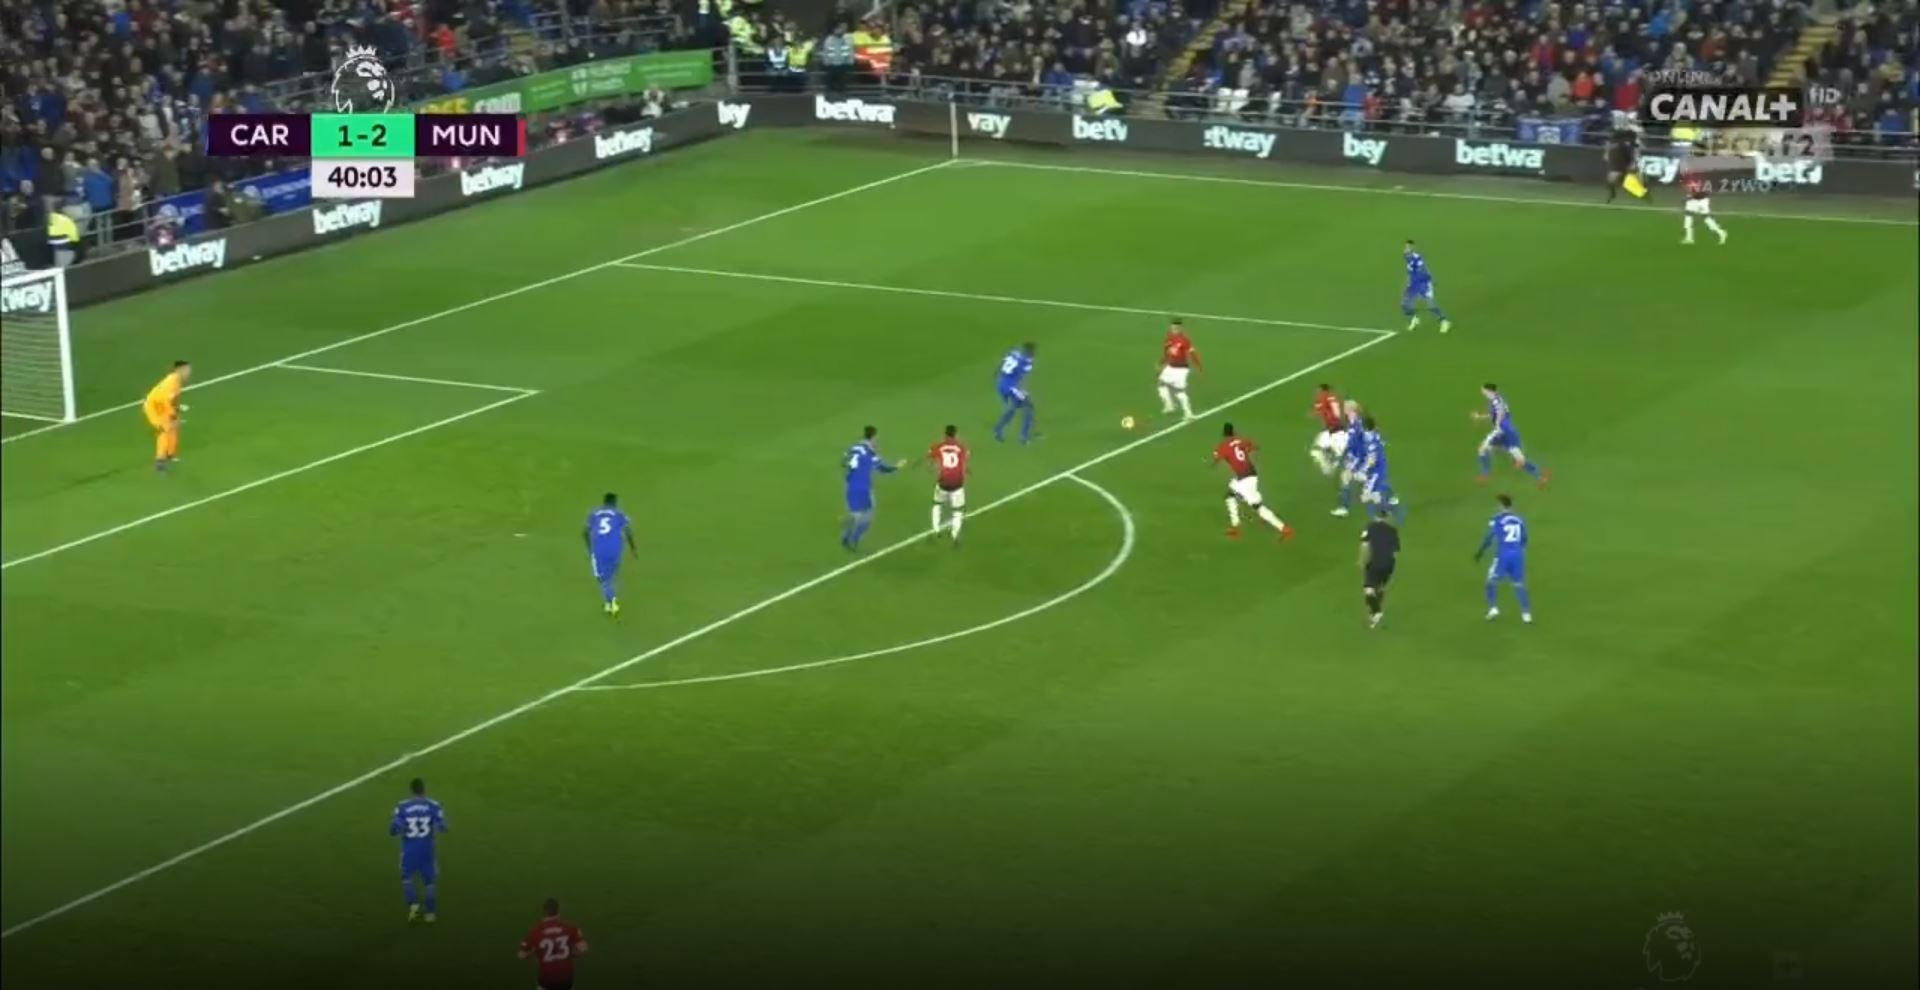 WATCH: Martial Scores After Beautiful Tika Taka Play From United